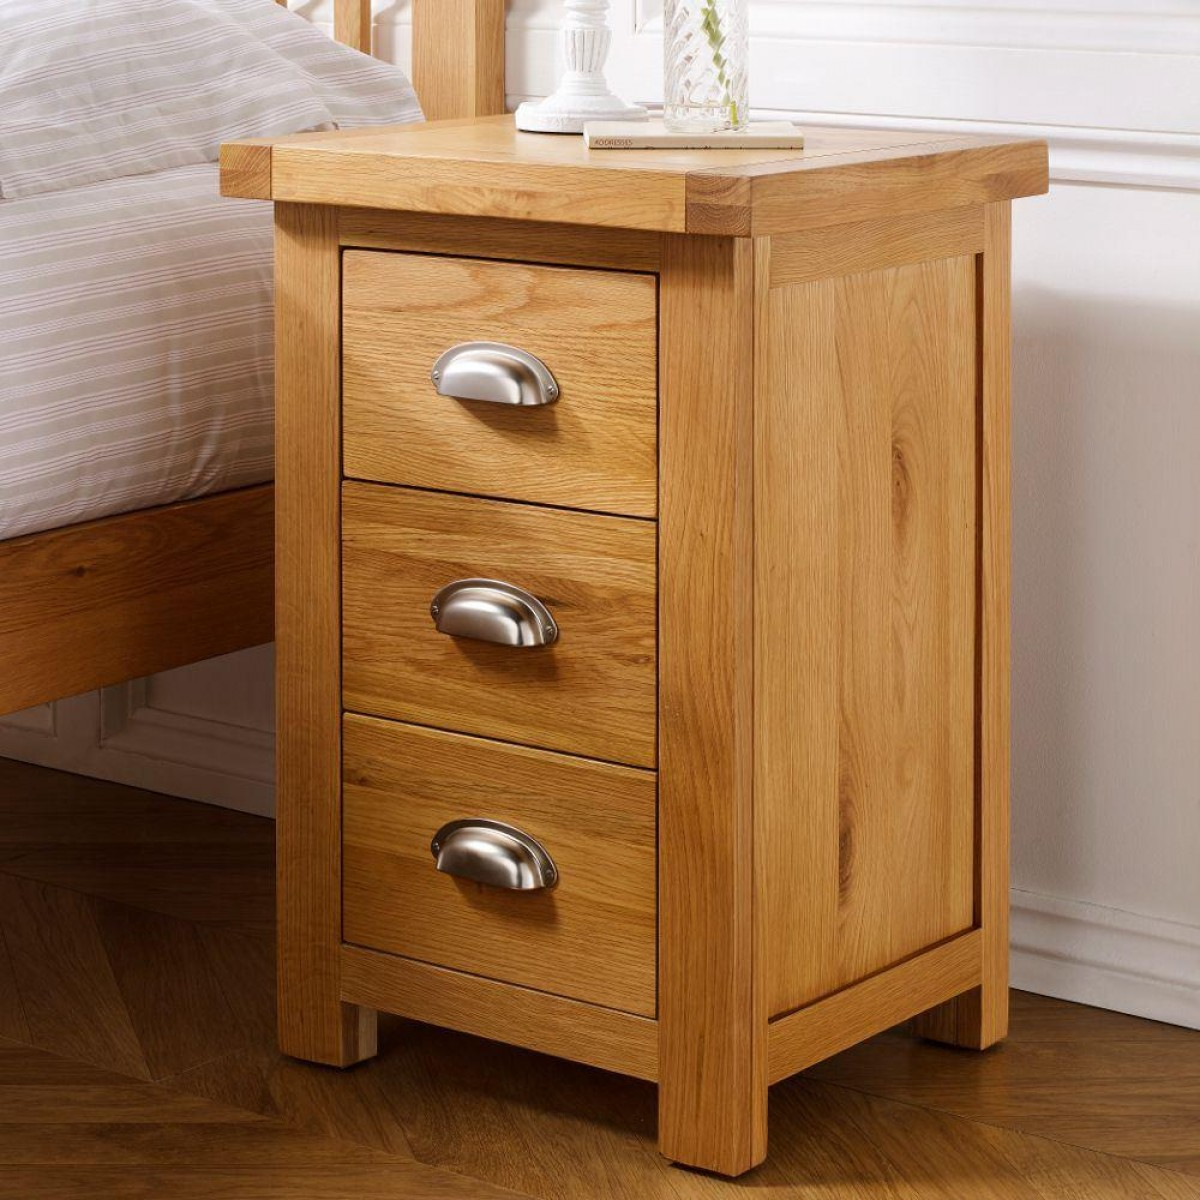 new arrival a7930 cb2b5 Woburn Oak Wooden 3 Drawer Large Bedside Table